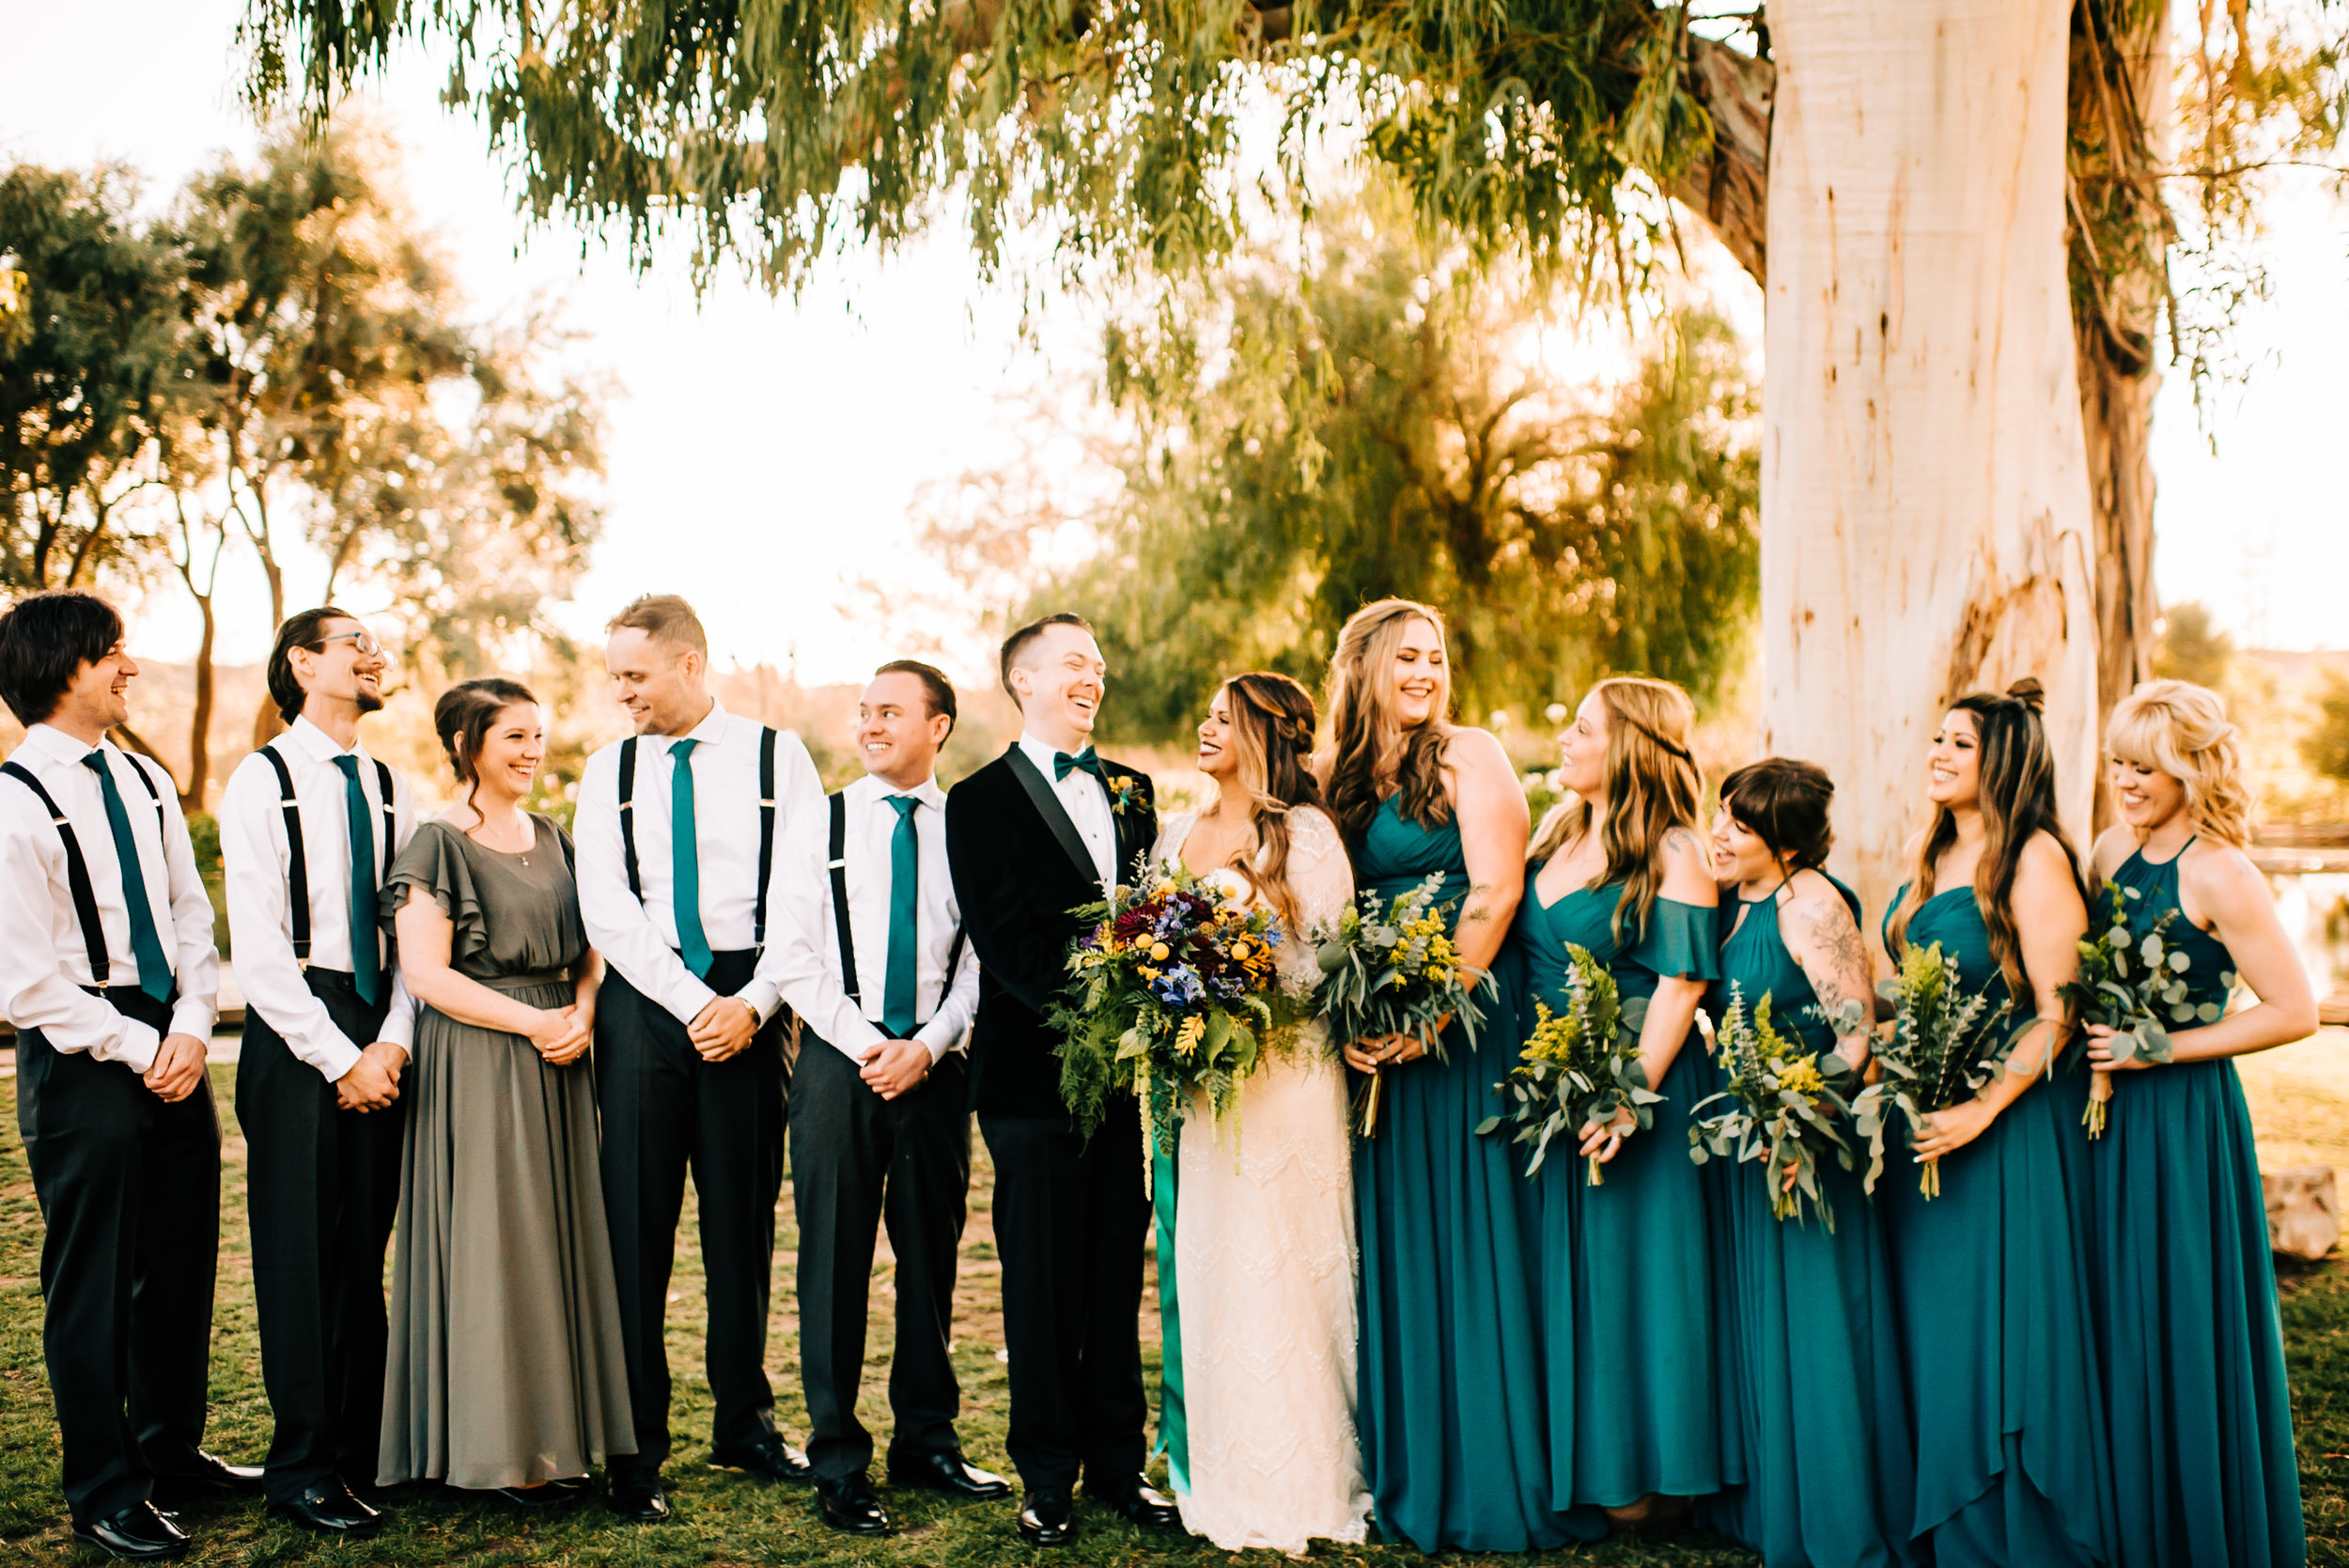 bay area nontraditional wedding photographer southern california boho wedding love light magic san francisco oakland northern california-704.jpg